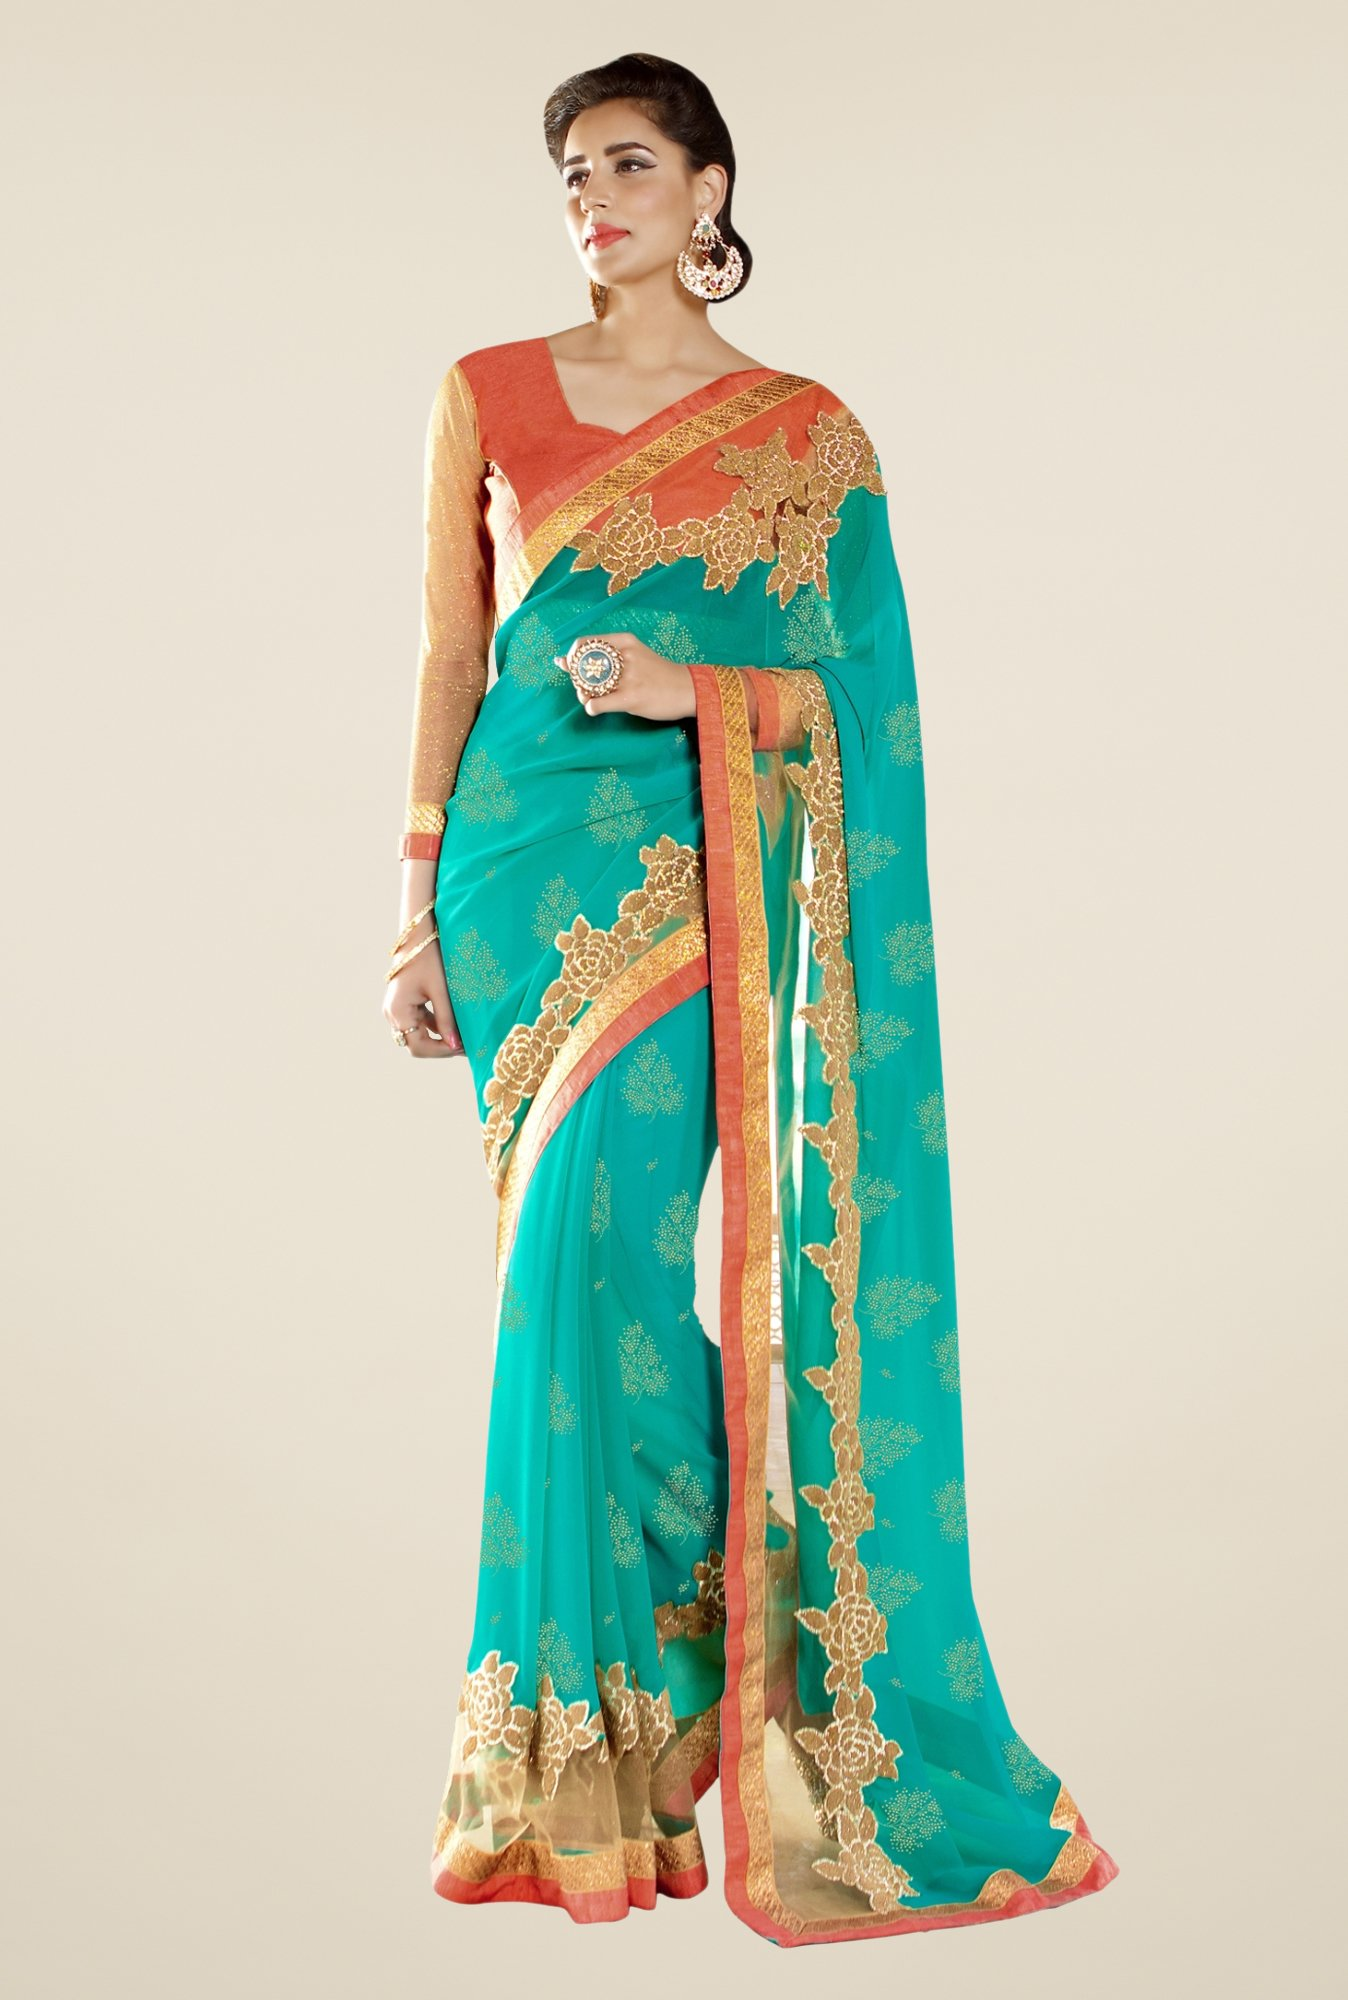 Triveni Teal Embroidered Shimmer & Faux Georgette Saree